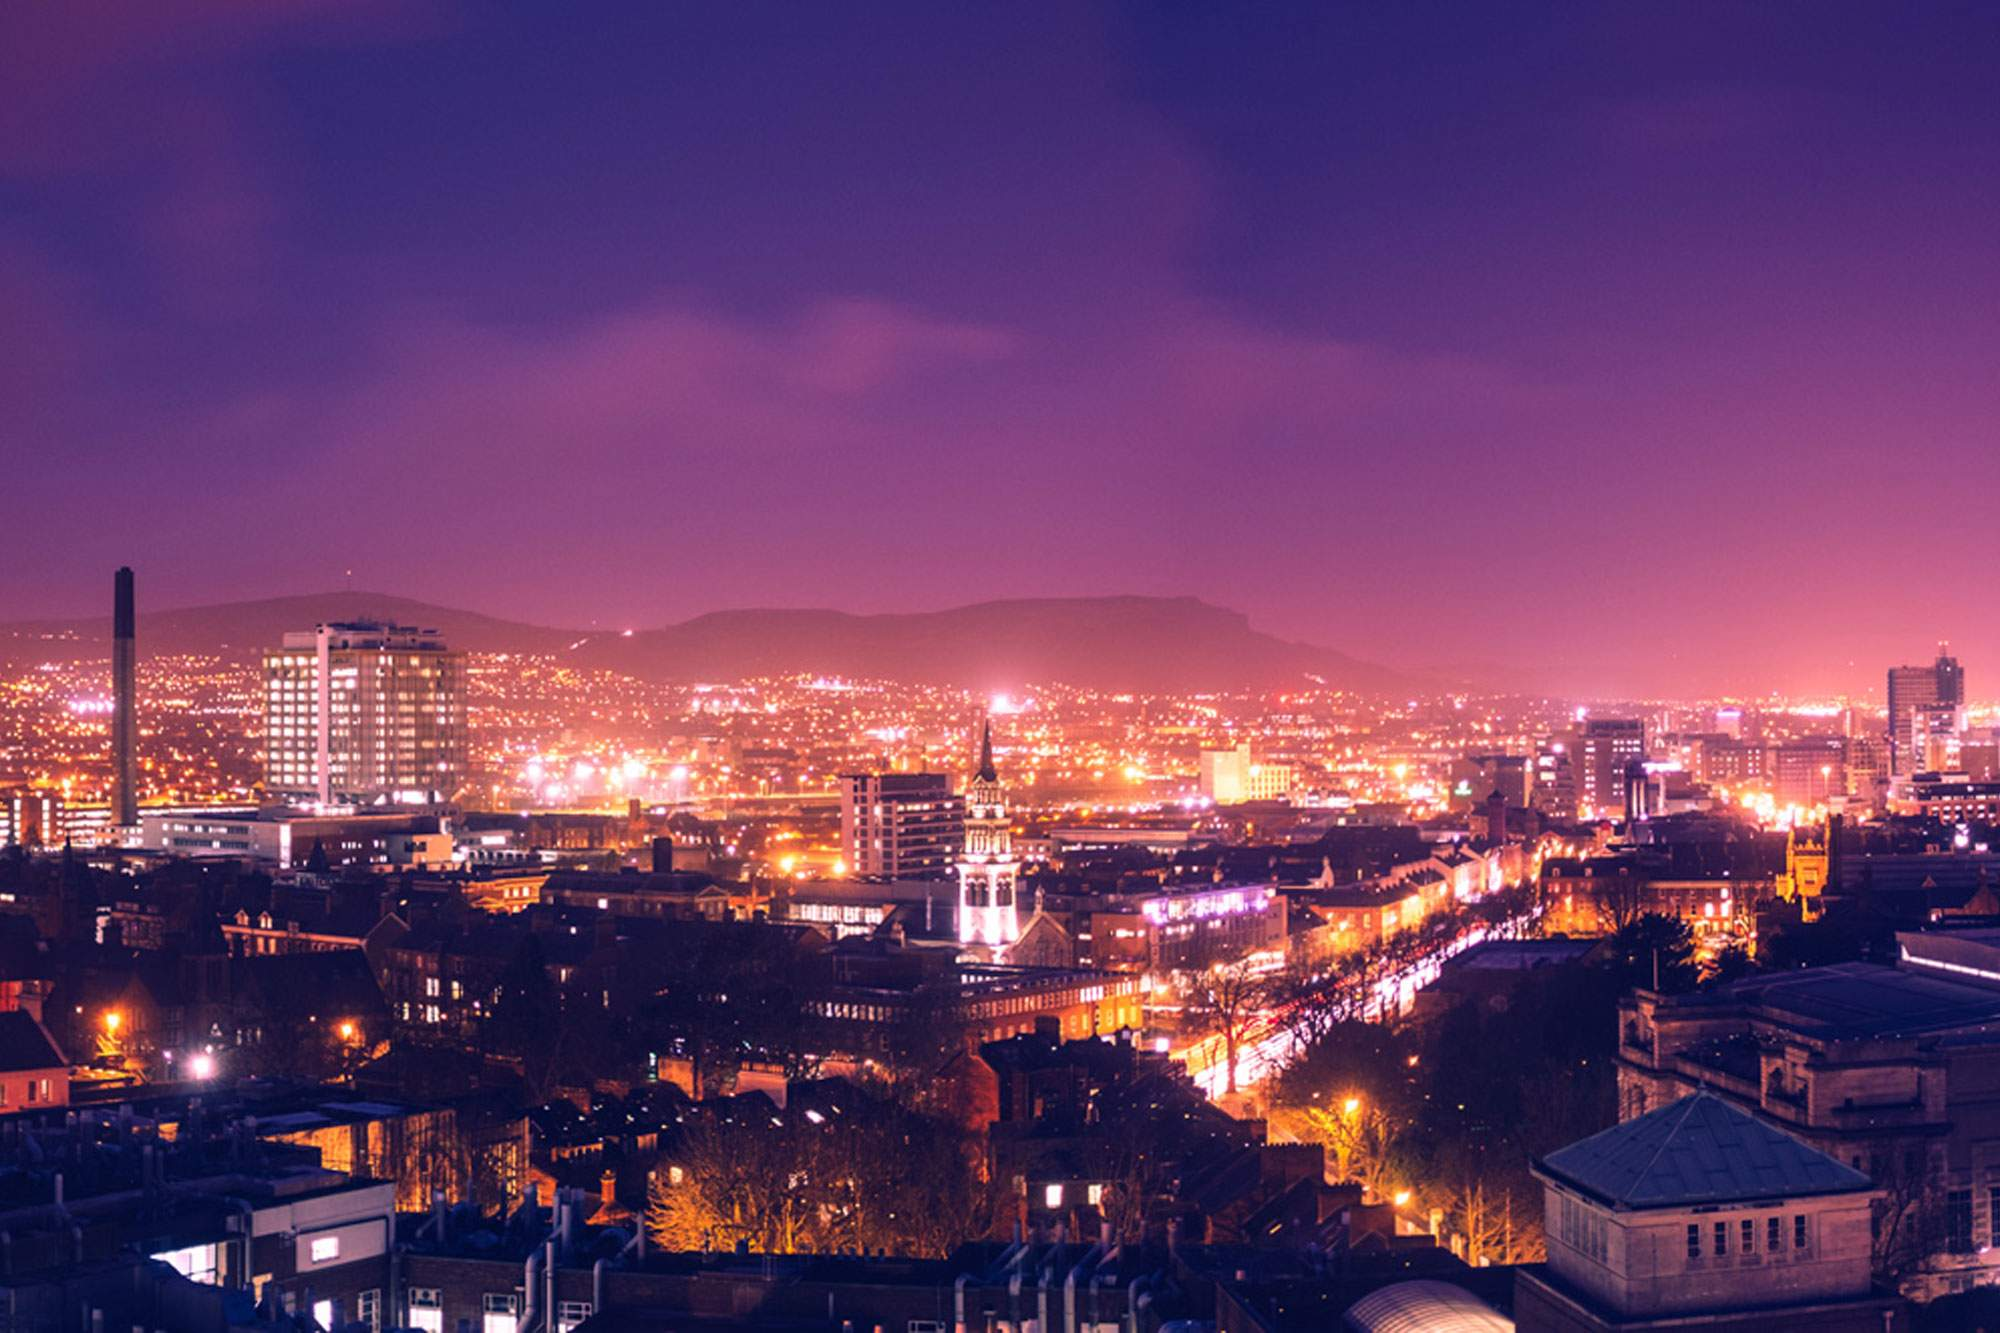 £700 million City Deal investment will help Belfast Region bounce back from Covid-19